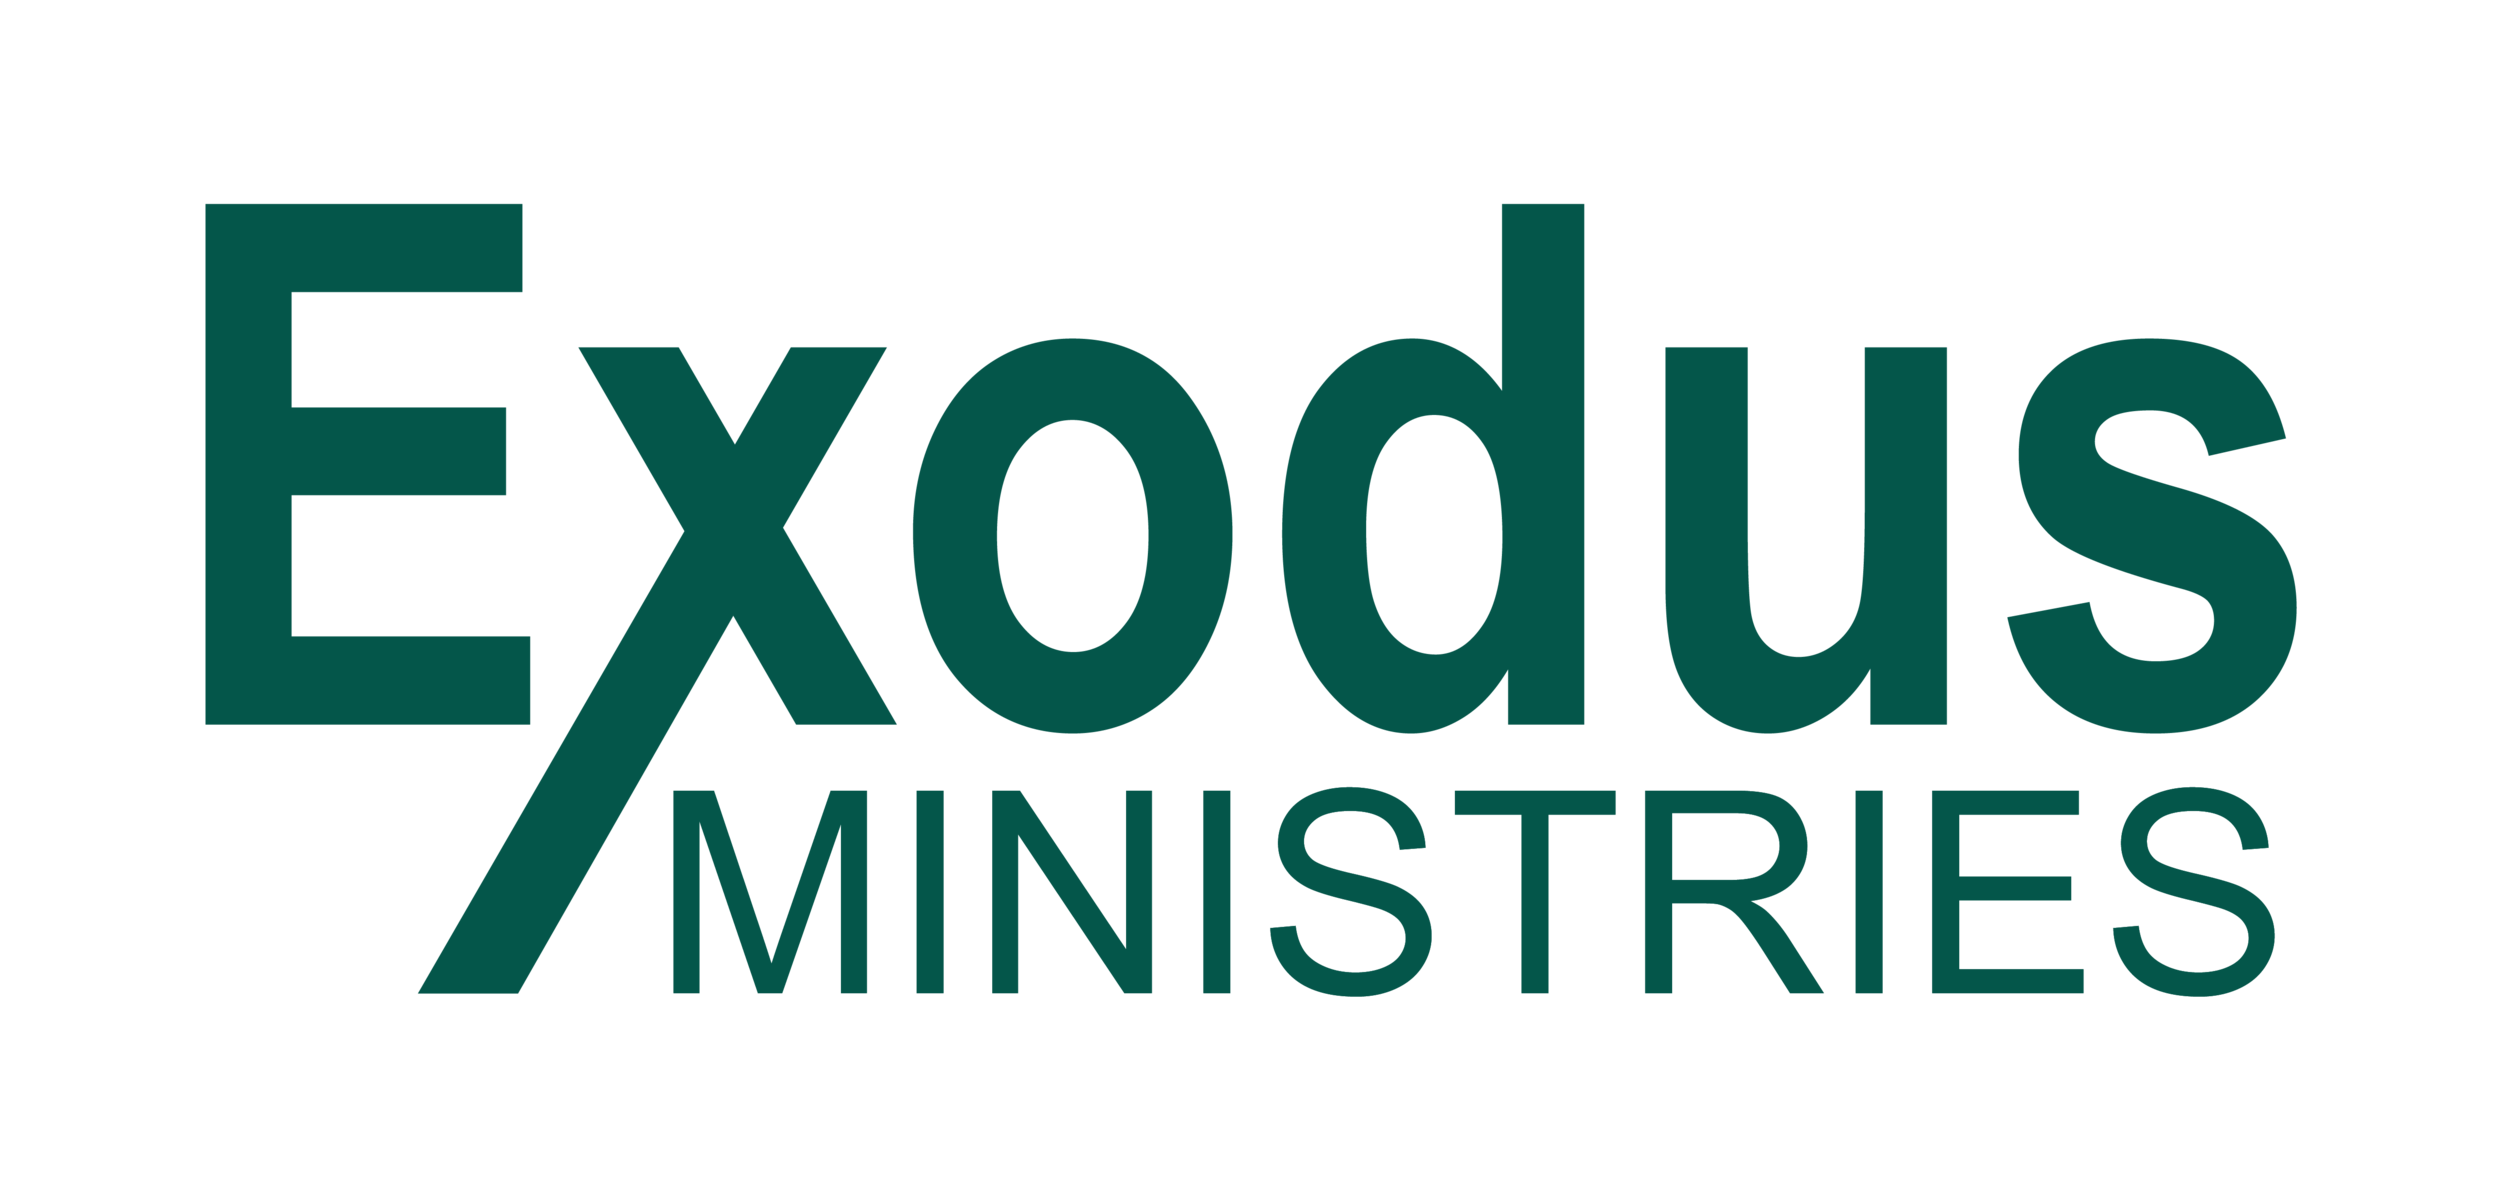 Exodus-Logo-Vector-Emerald-traced-01.png